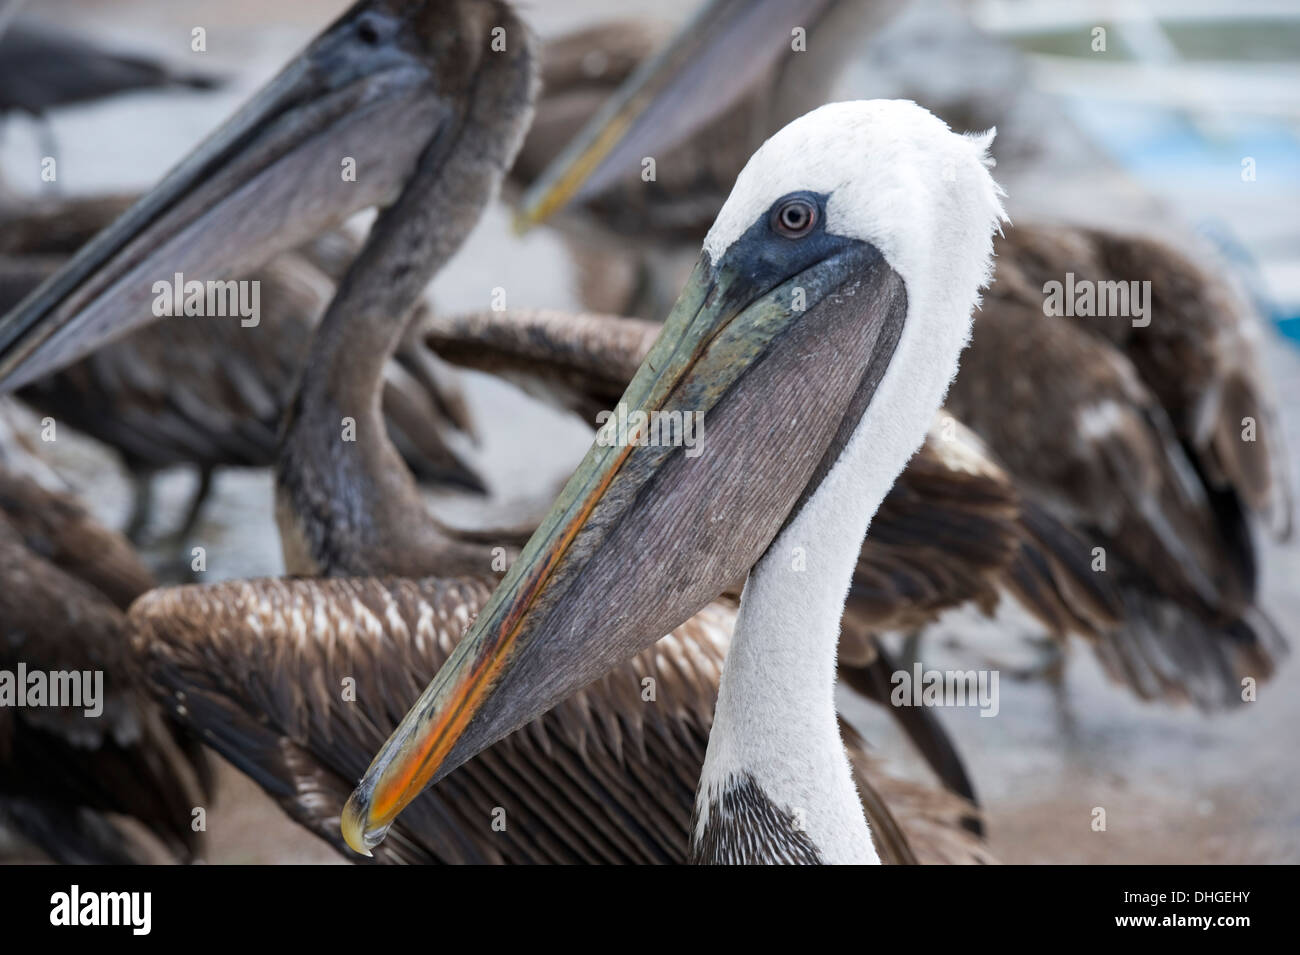 Pelican at Santa Cruz island Galapagos Islands Ecuador Stock Photo